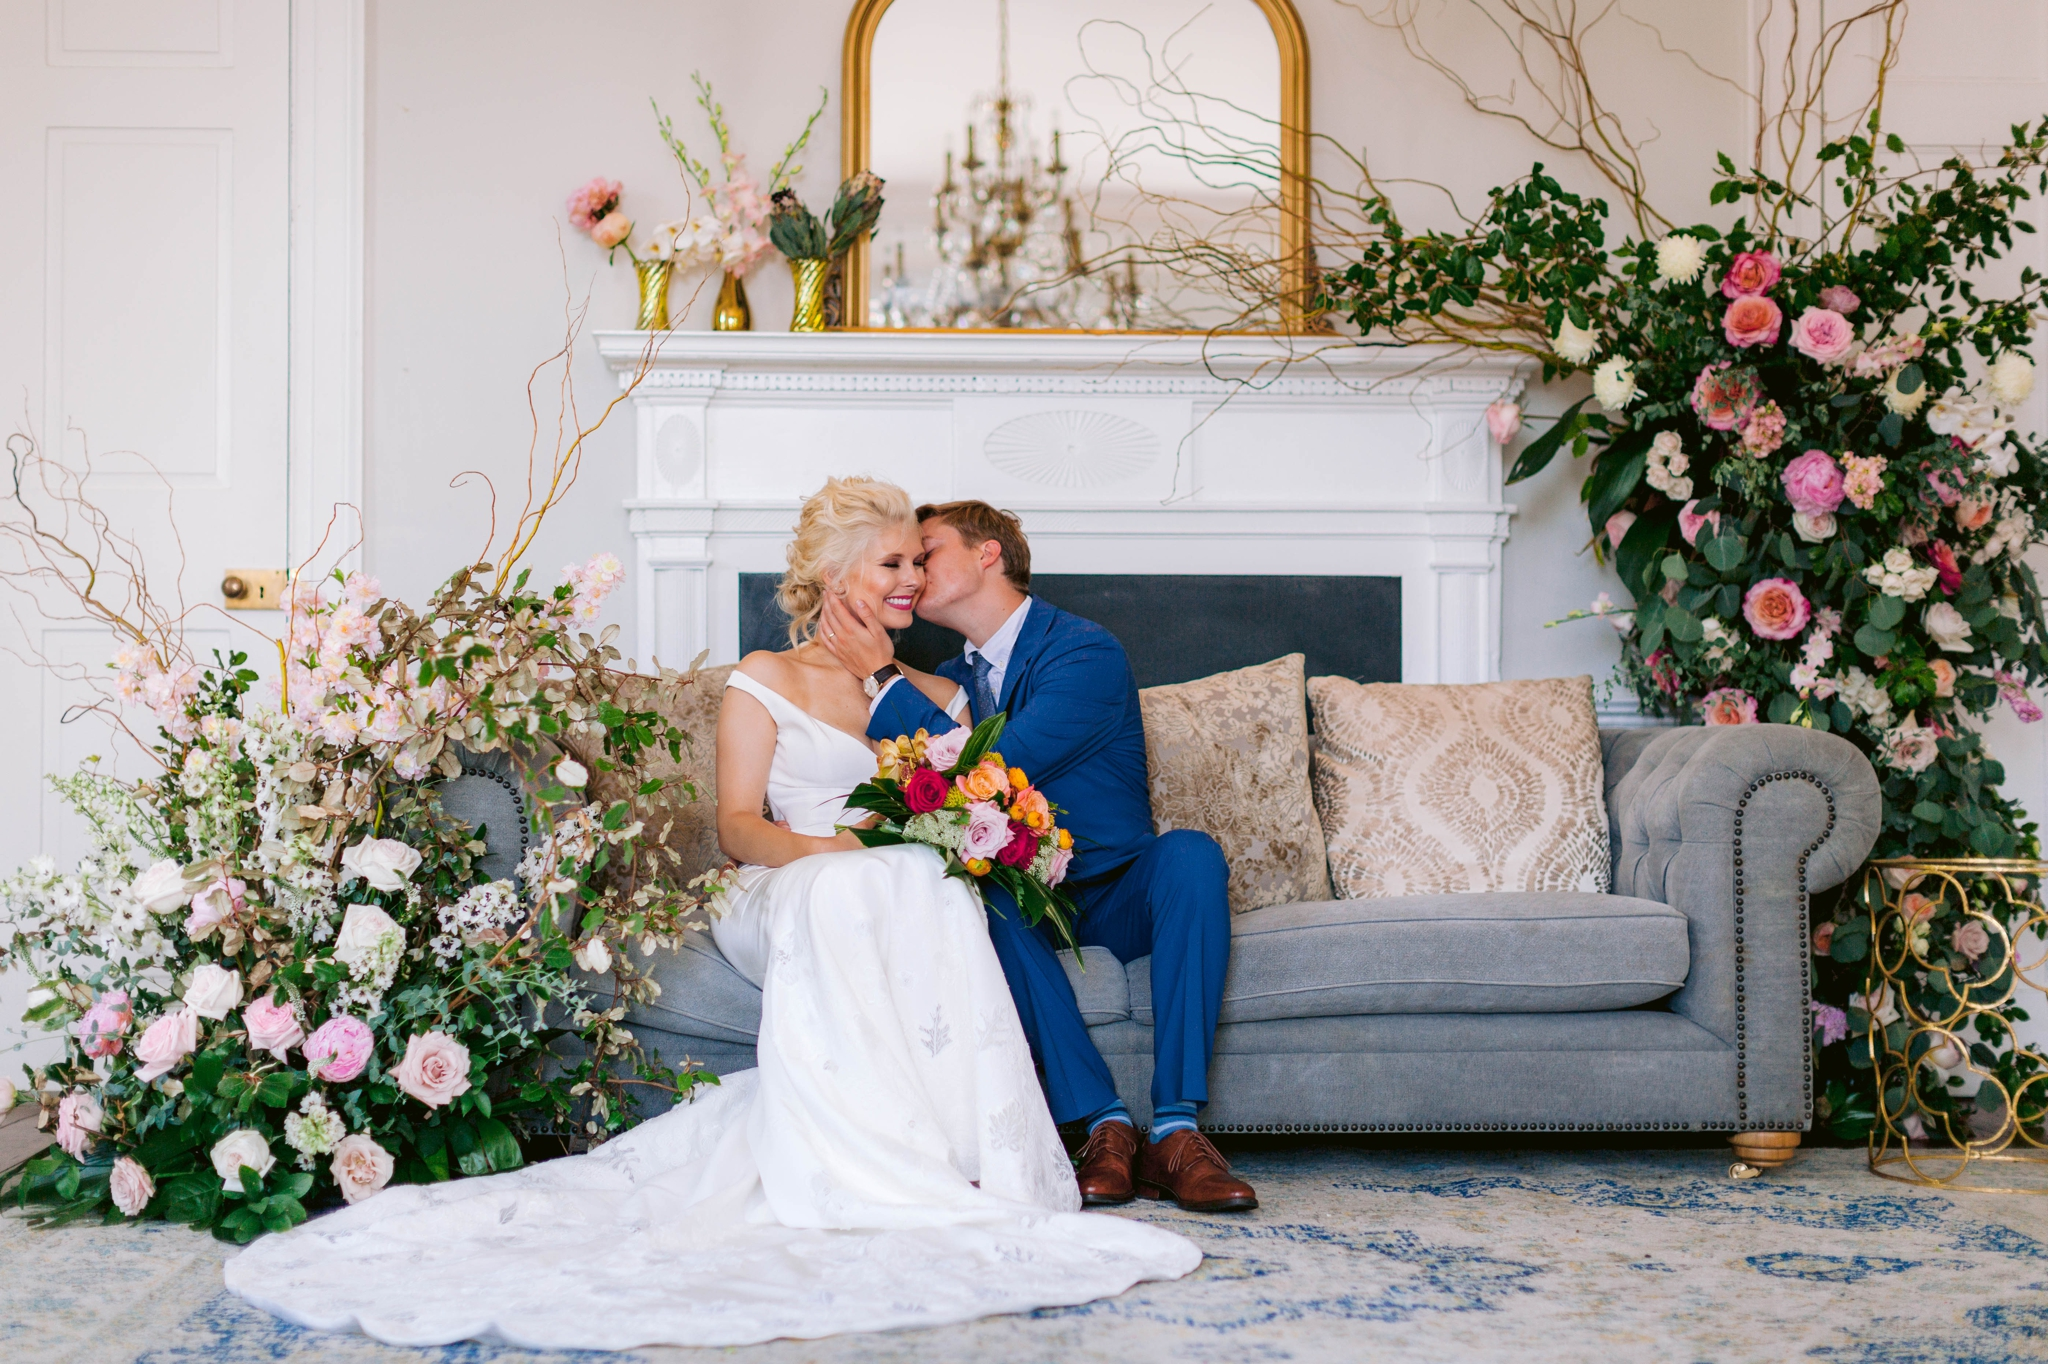 Fine Art High Fashion Indoor Bride and Groom Portrait - Navy, Green, Gold and Berry colored Tropical Wedding Inspiration for your Wedding in Hawaii! - Honolulu, Oahu, Hawaii Photographer - Fine Art Film Photography - Light and Airy